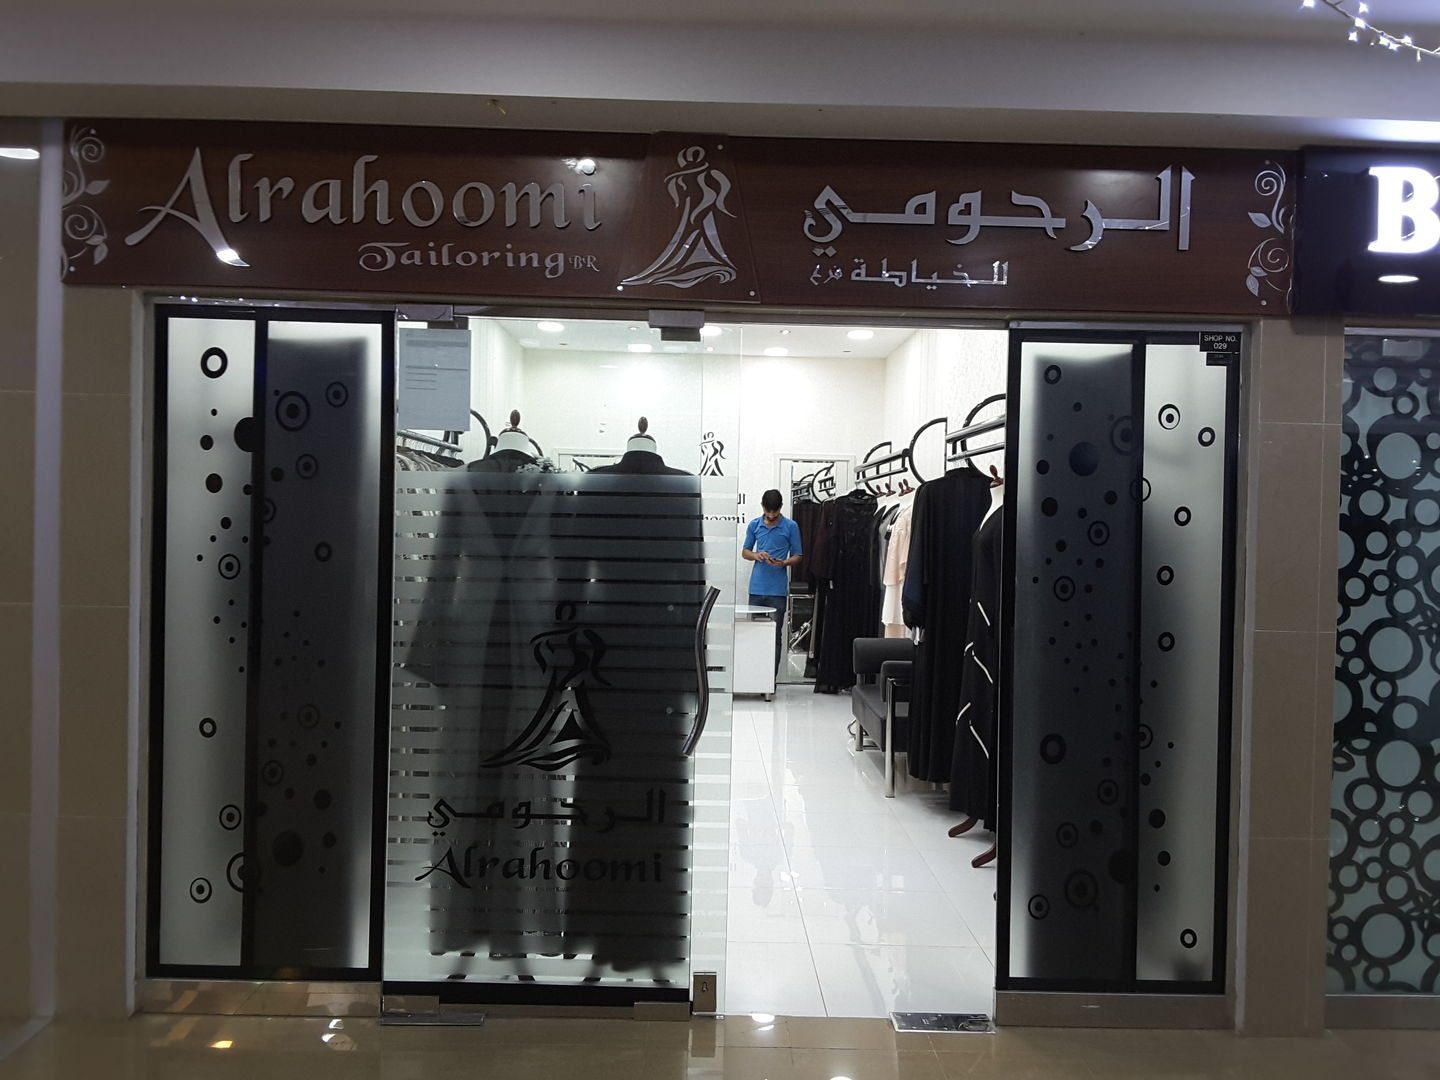 HiDubai-business-al-rahoomi-tailoring-shopping-apparel-mirdif-dubai-2